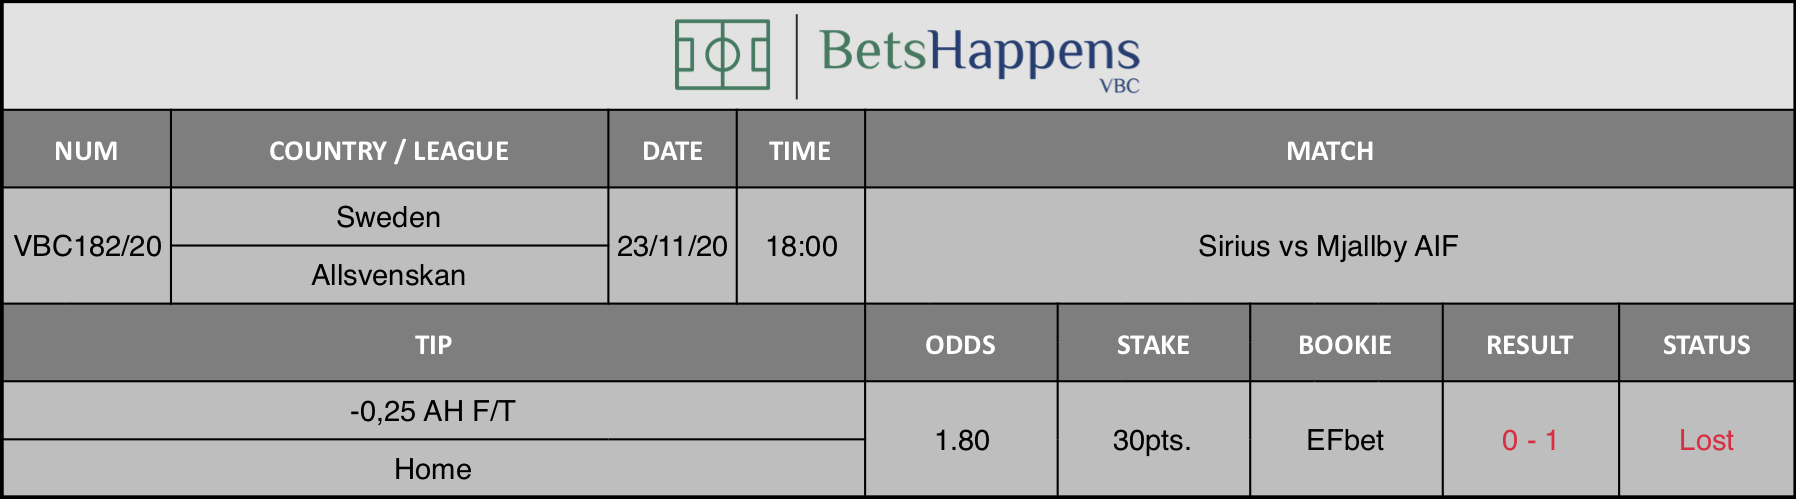 Results of our tip for the Sirius vs Mjallby AIF match where -0,25 AH F/T Home is recommended.